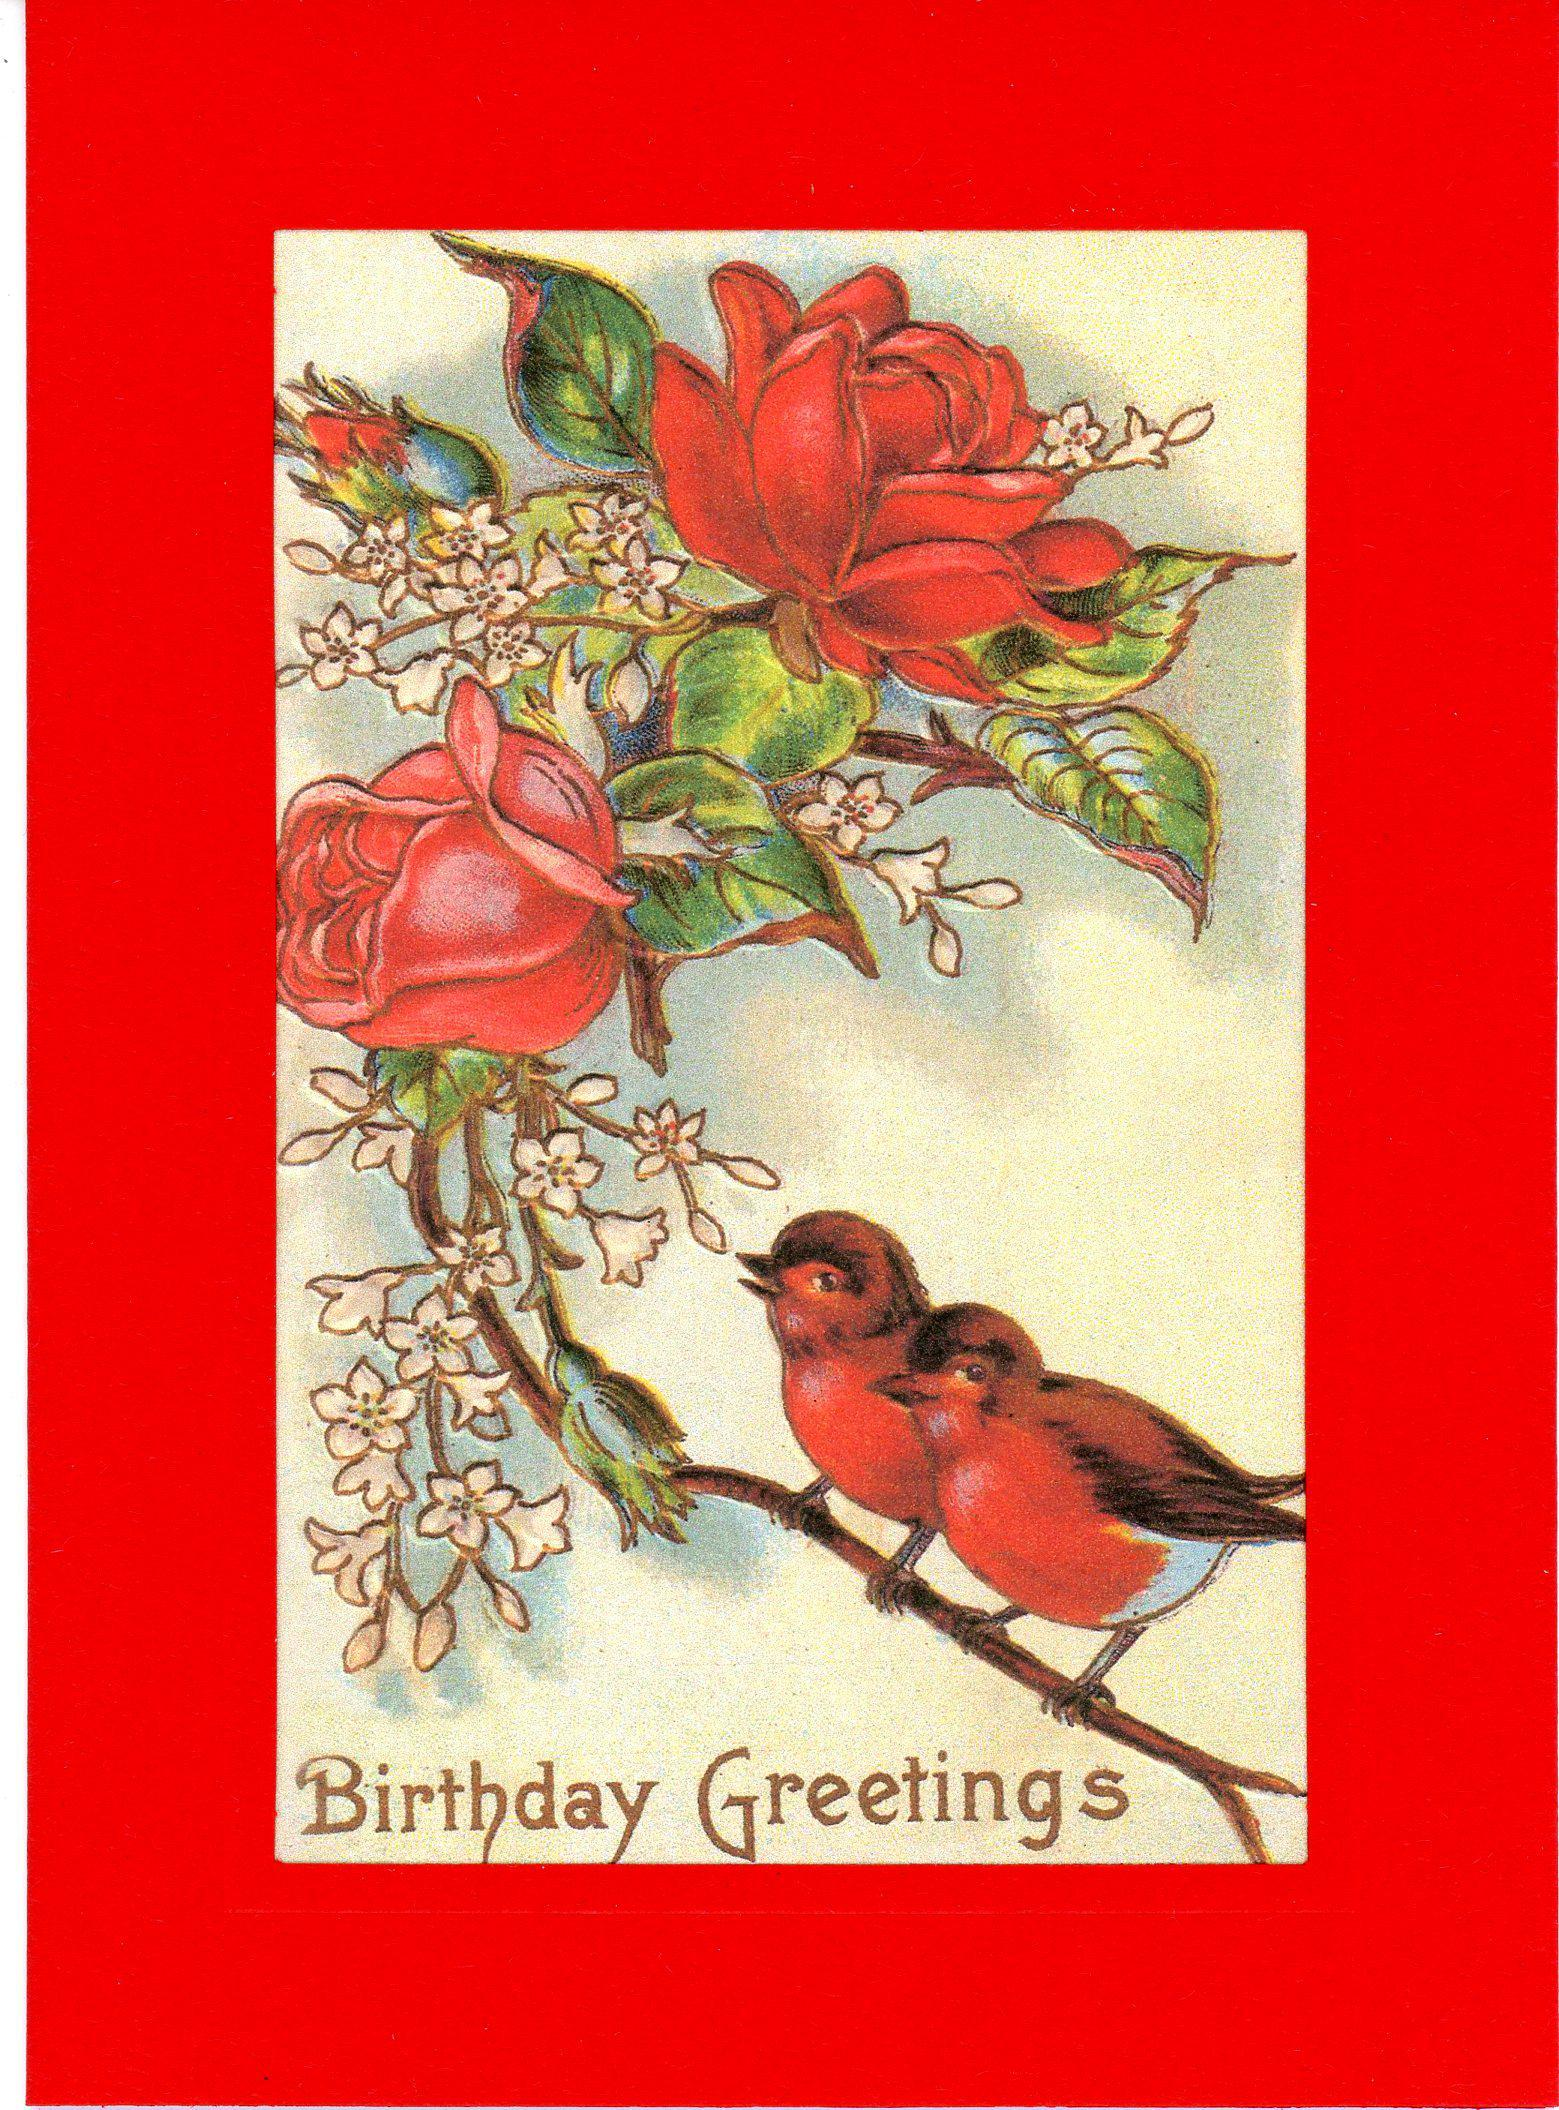 Birthday Greetings-Greetings from the Past-Plymouth Cards